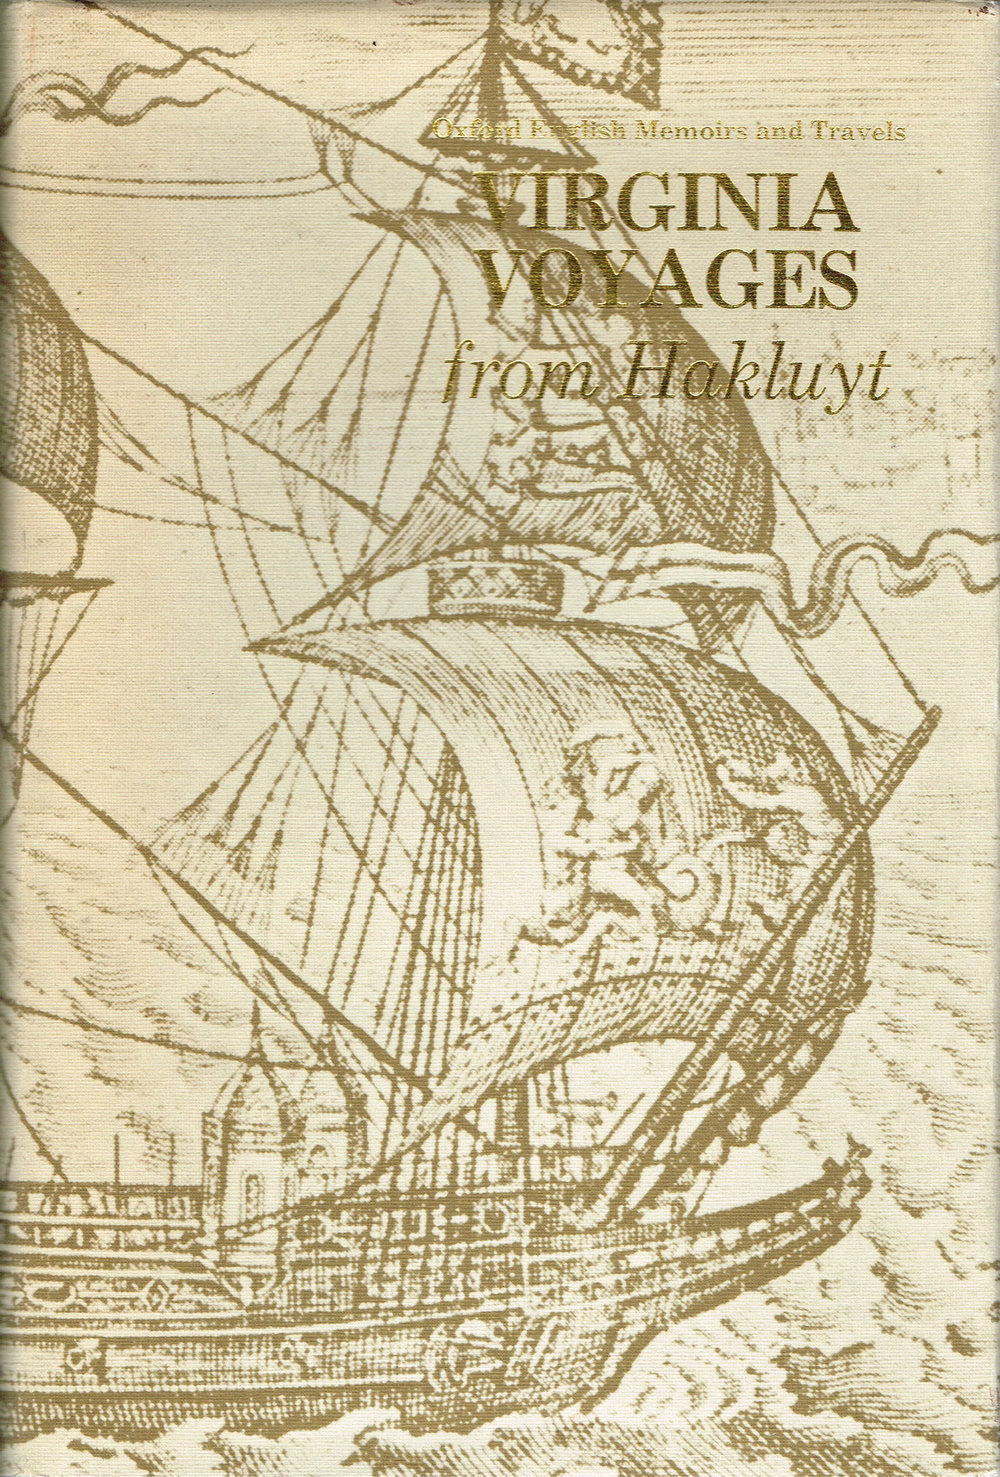 Virginia Voyages from Hakluyt  Edited with an Introduction by David B. Quinn and Alison M. Quinn.